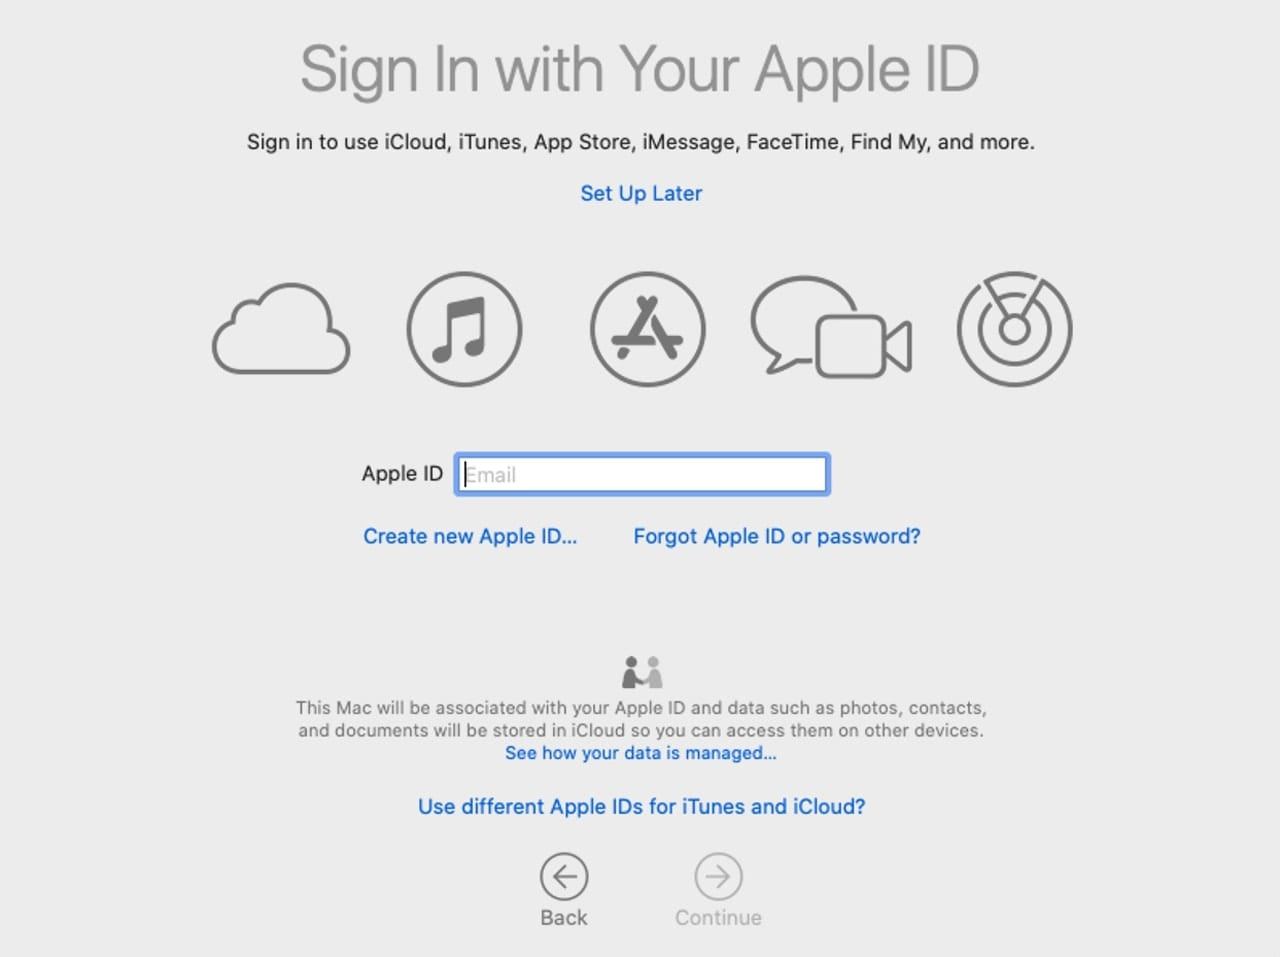 Enter your Apple ID to allow setup to configure multiple services for you.